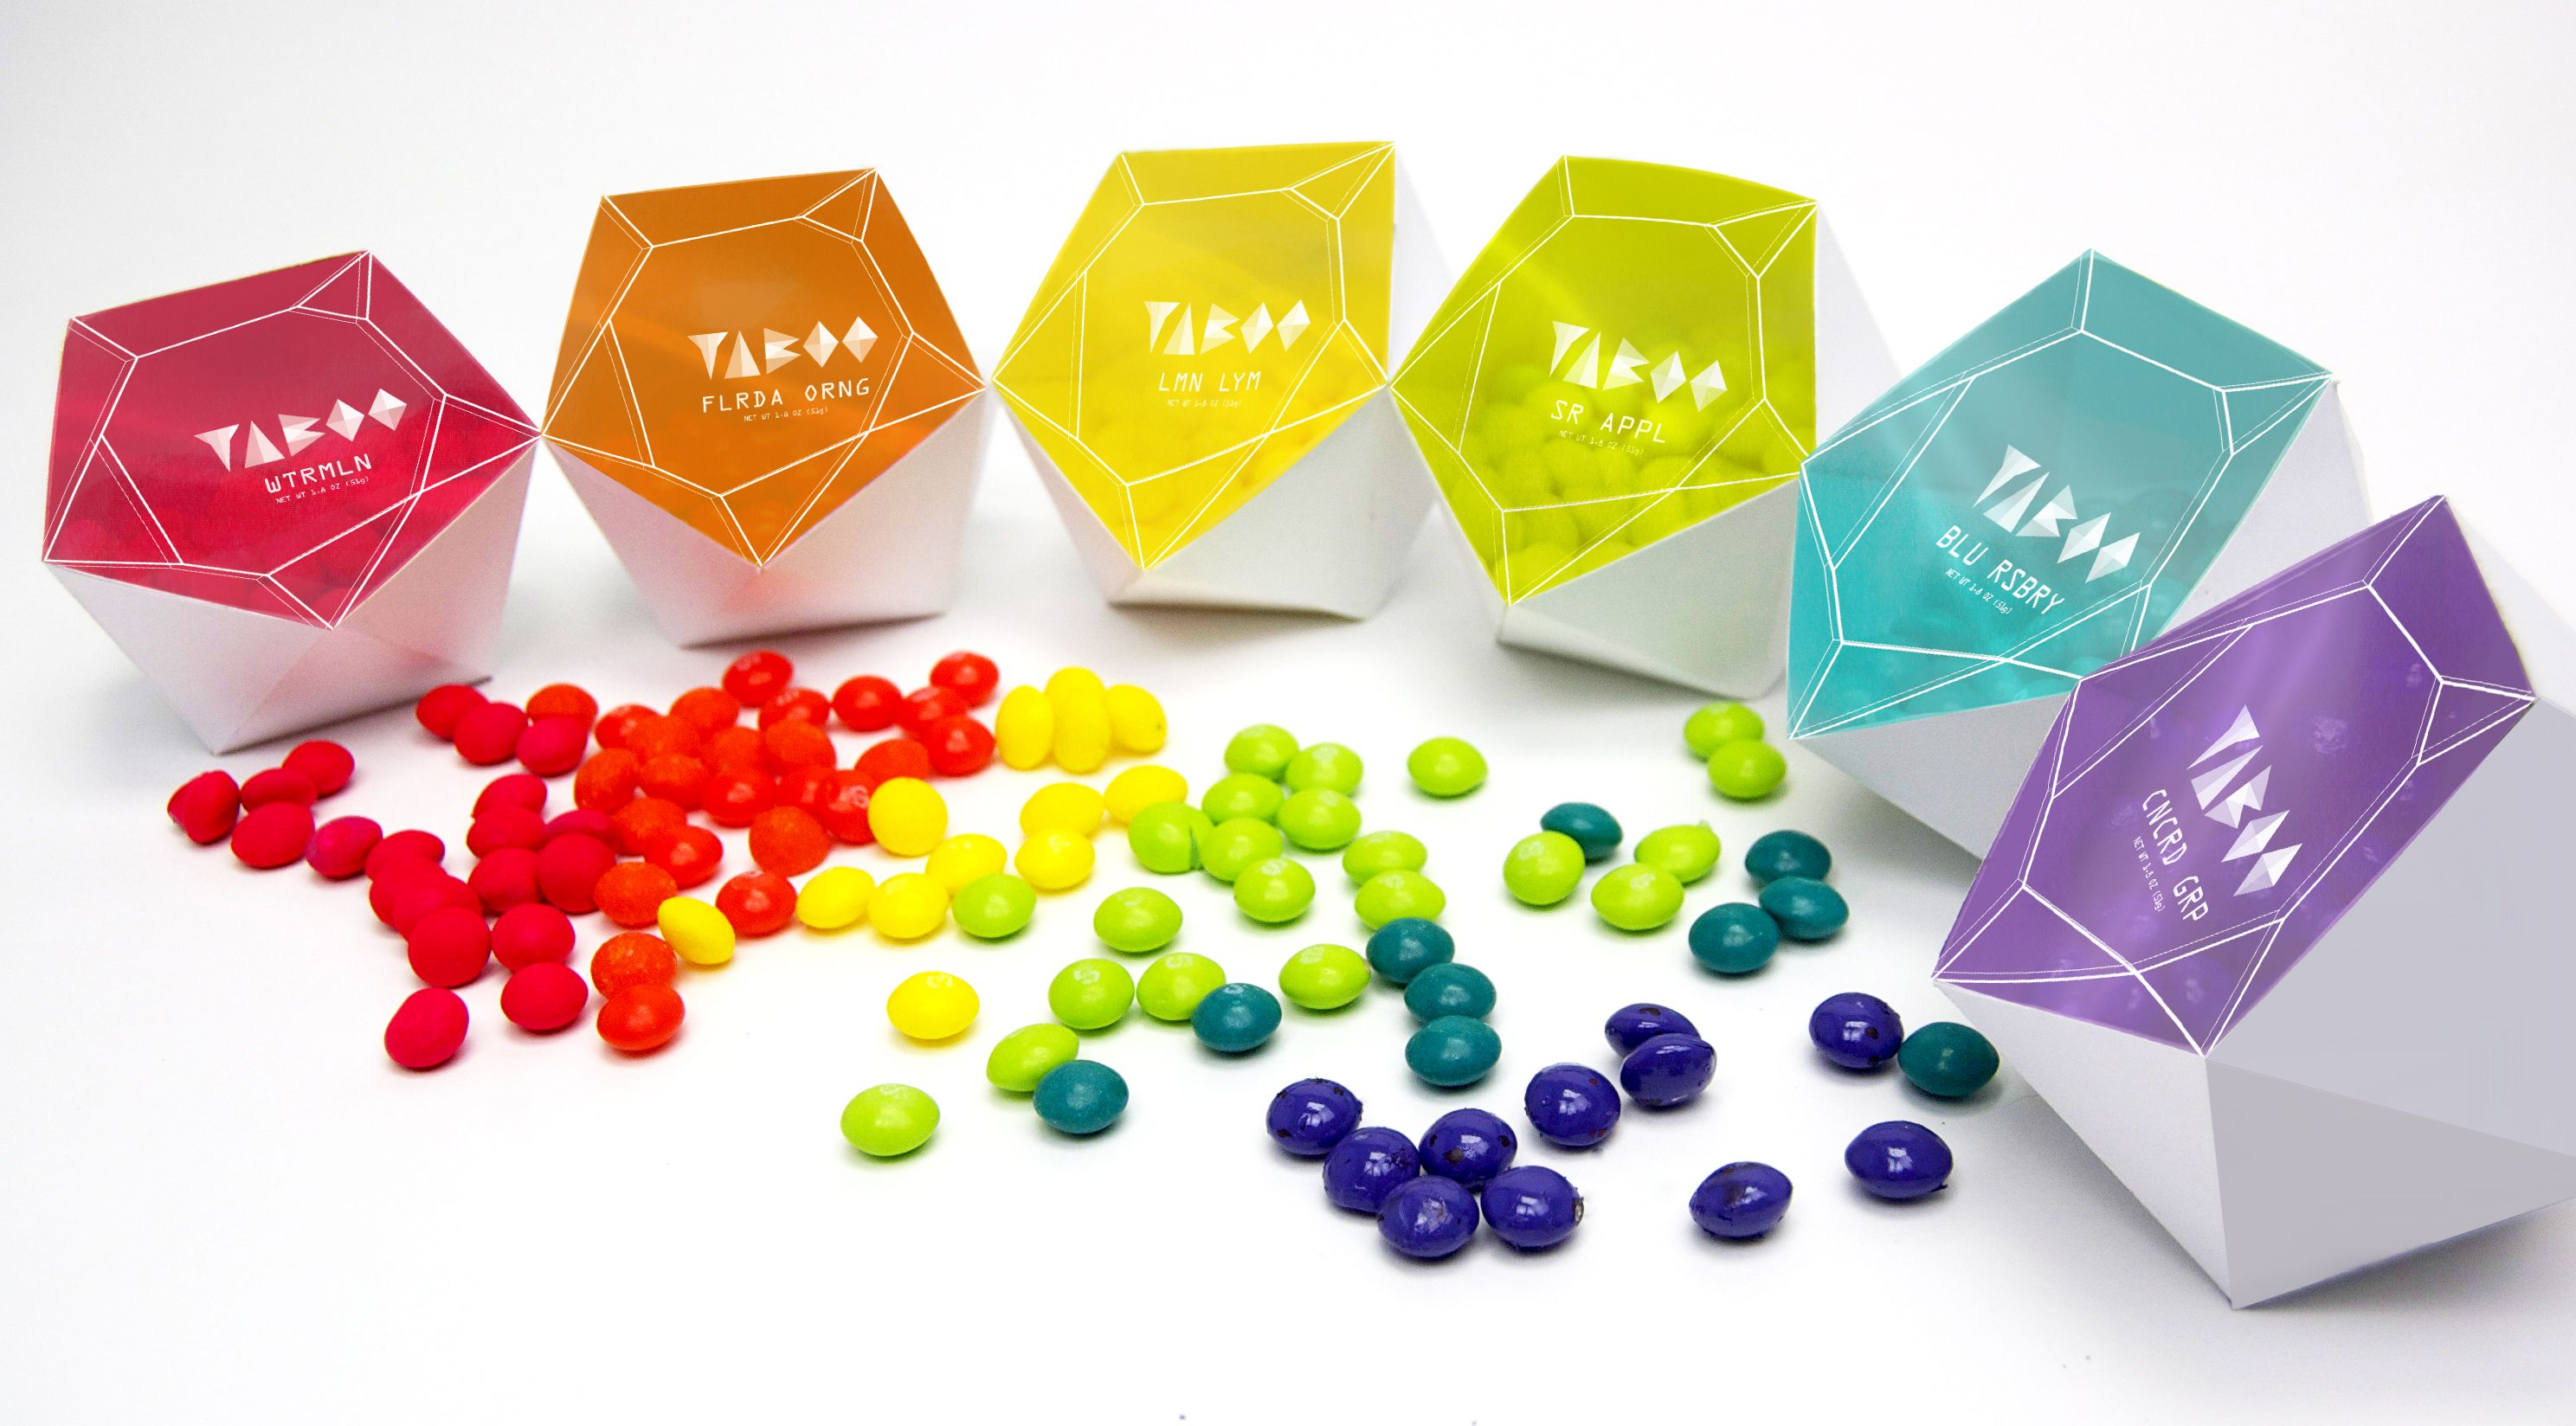 TABOO Candy Packaging Spencer Huddleston Colorful Candy Prism - 30 genius packaging designs